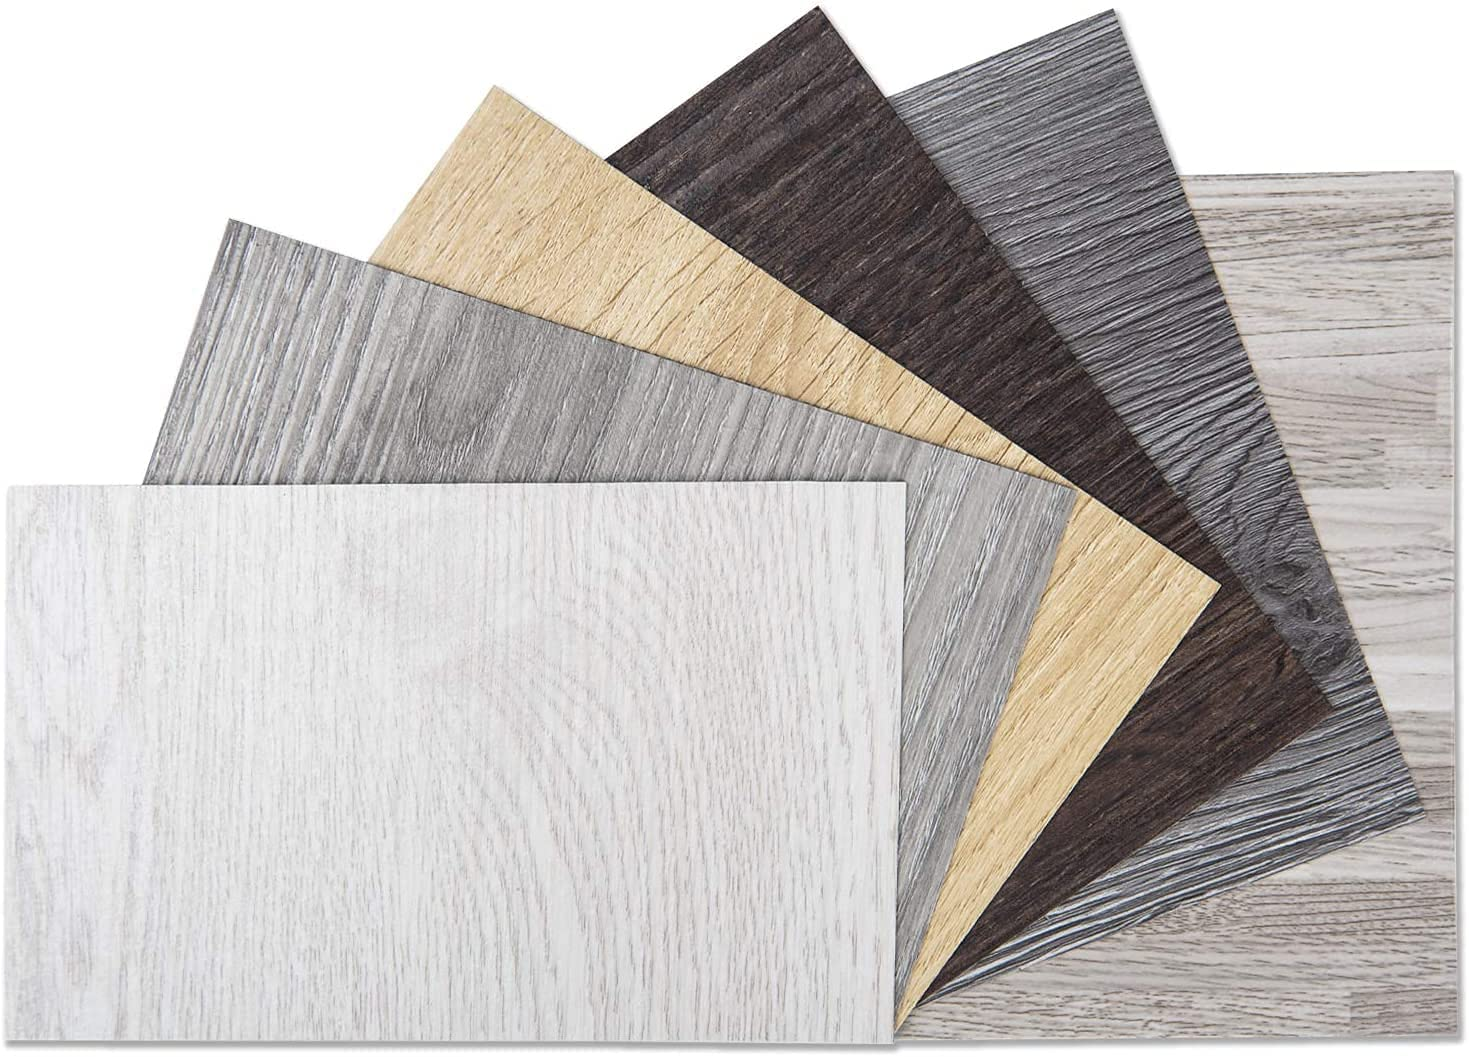 A43007-Peel-and-Stick-Floor-Tile 36 Tiles 54 Sq.Ft